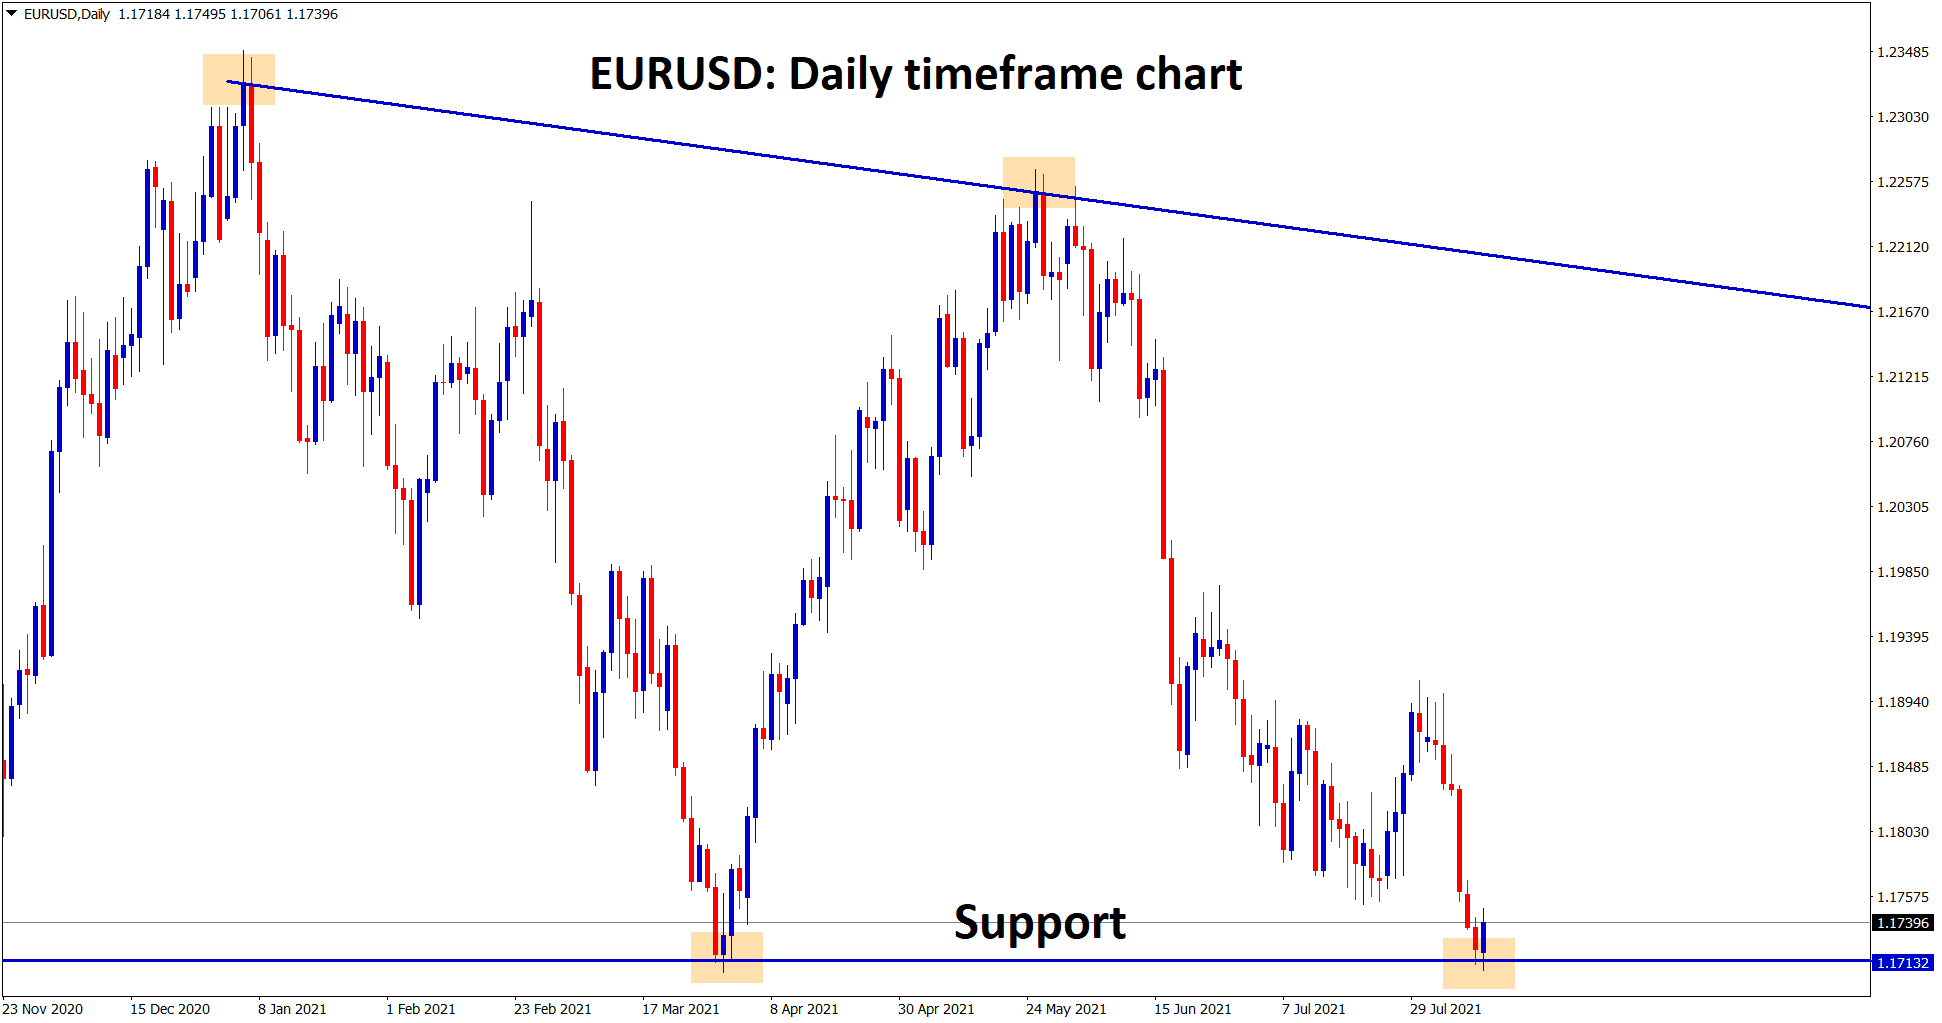 EURUSD is standing at the support zone wait for the reversal or breakout.